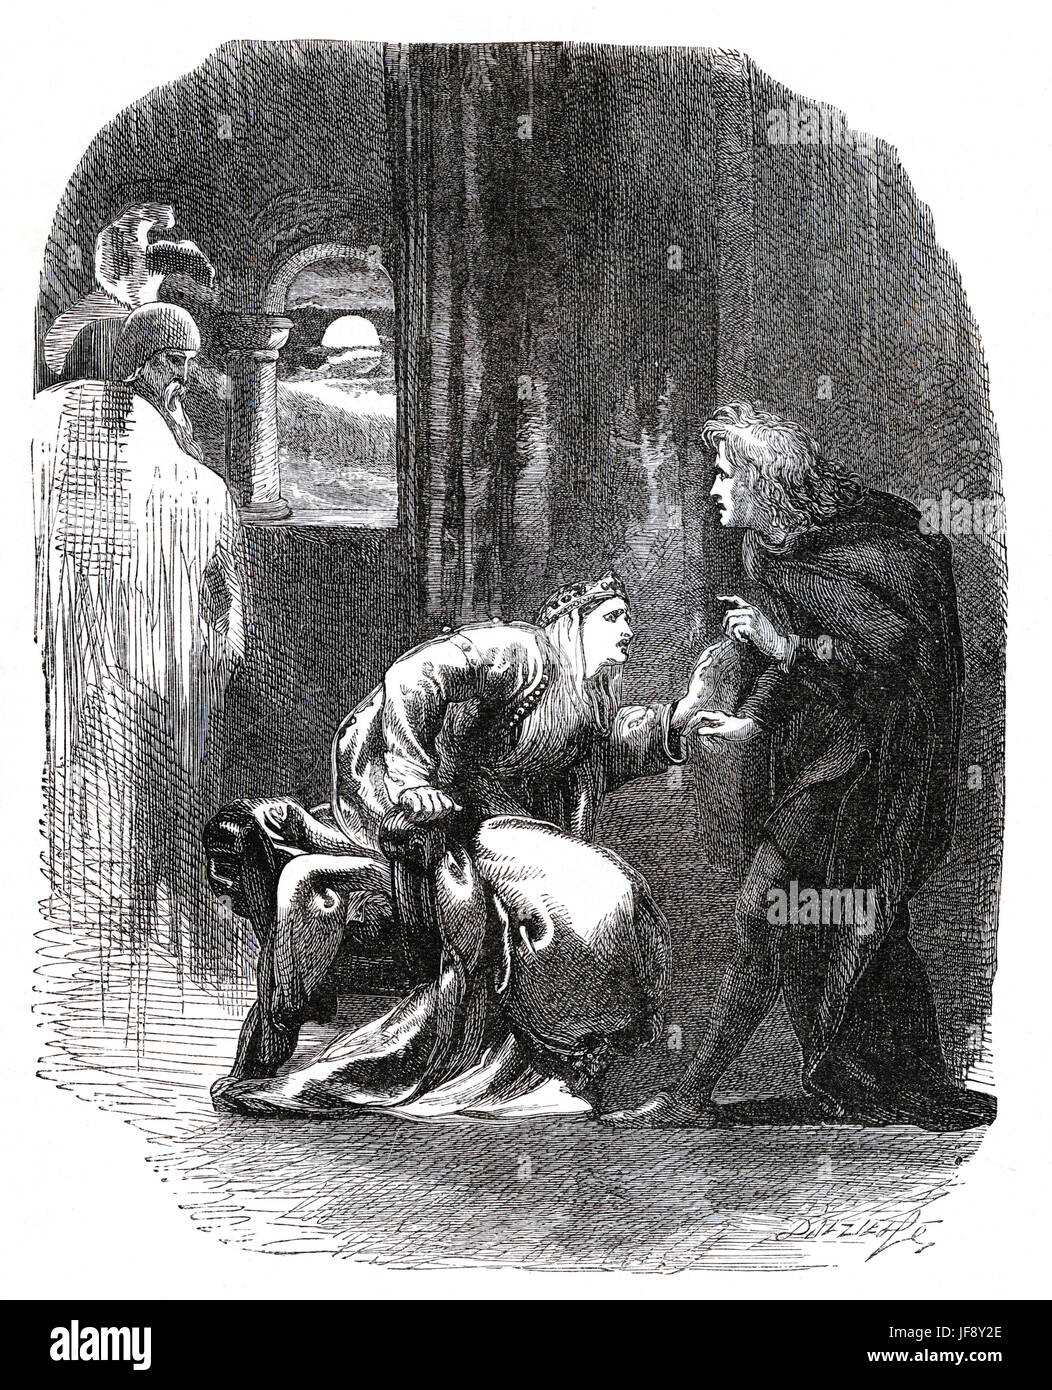 Hamlet, play by William Shakespeare (26 April 1564 – 23 April 1616). Act 3 scene 3, Hamlet, Queen Gertrude and the - Stock Image